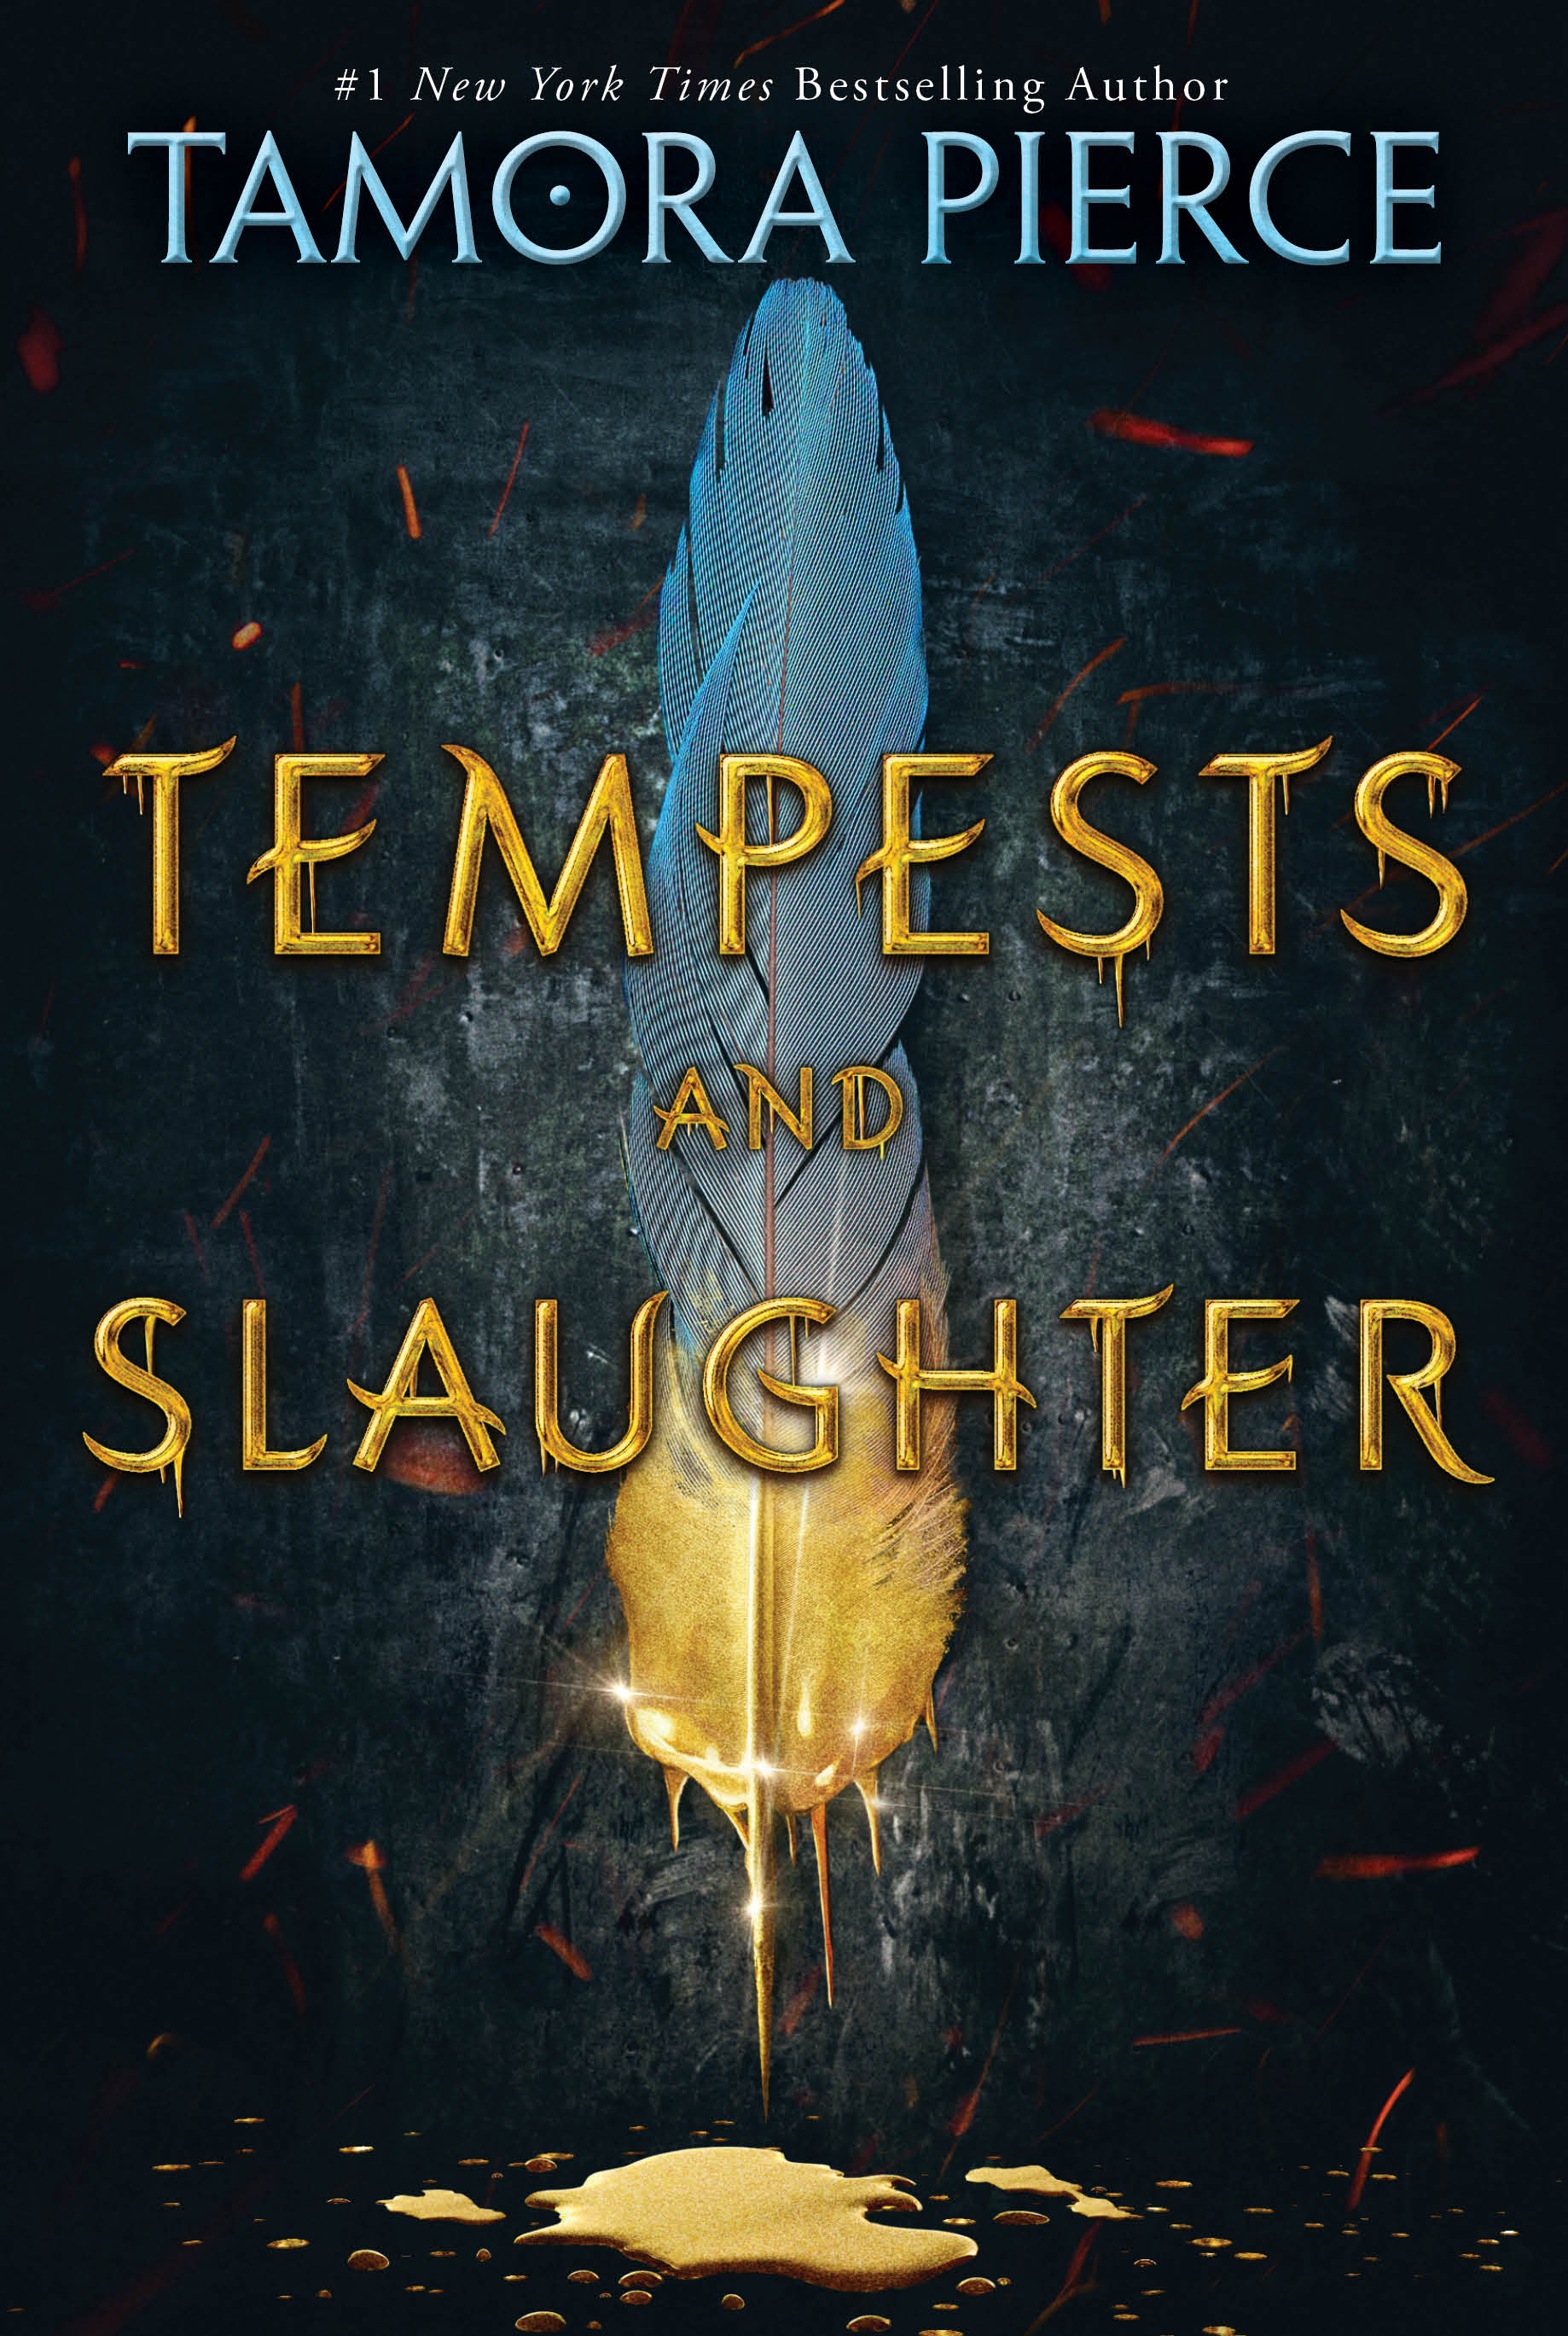 Tempests and Slaughter by Tamora Pierce